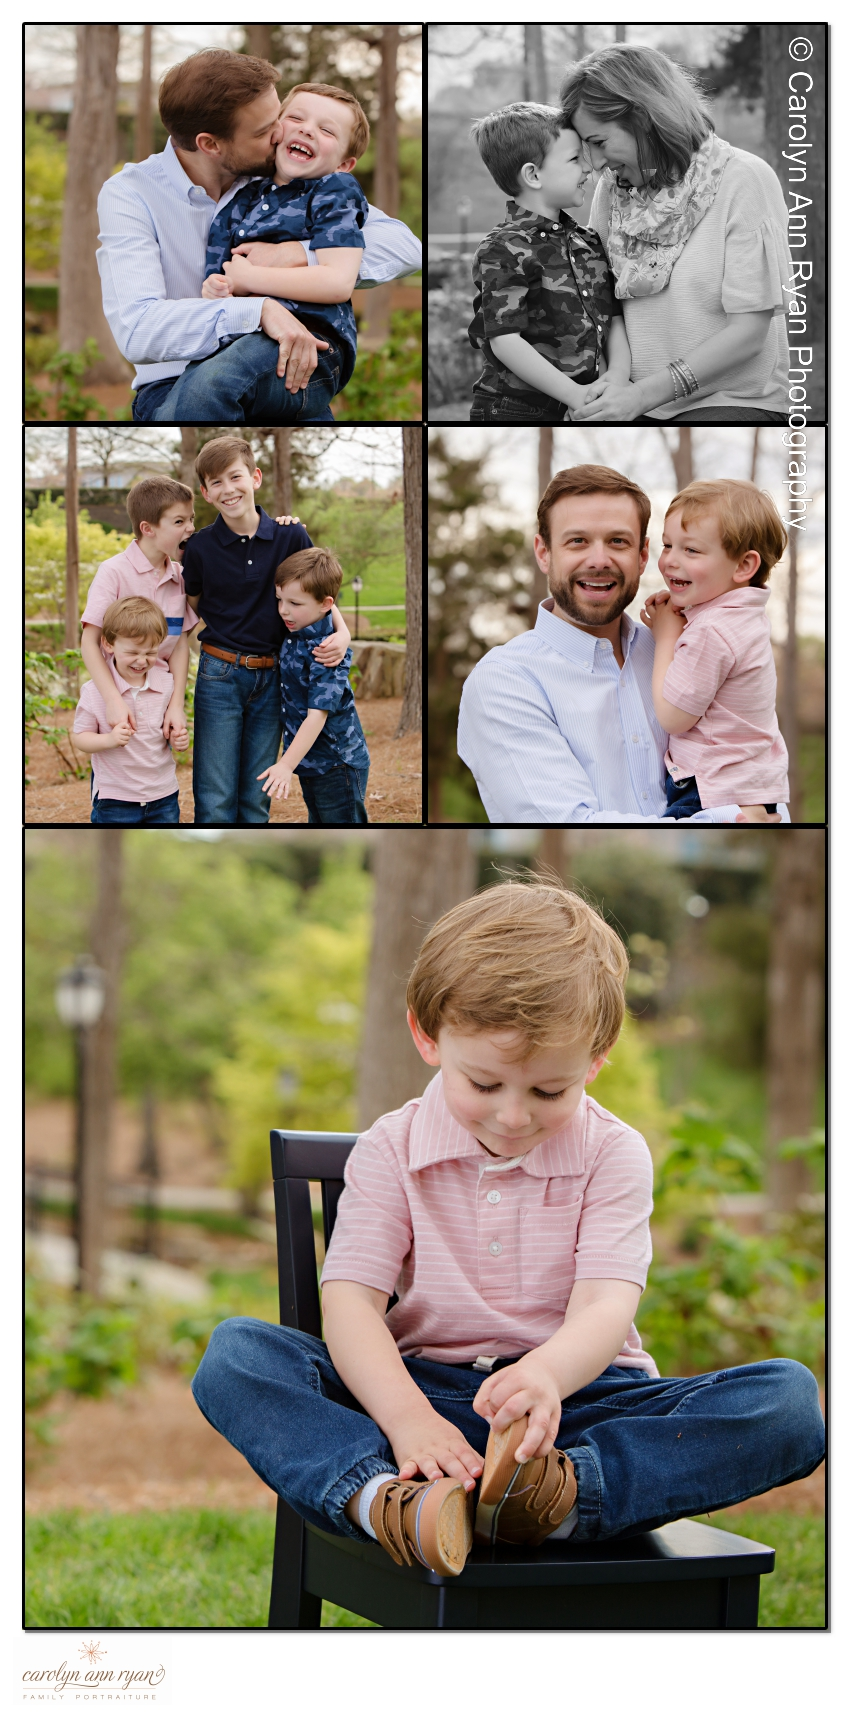 Sweet Family Photography in Charlotte NC by experienced photographer, Carolyn Ann Ryan